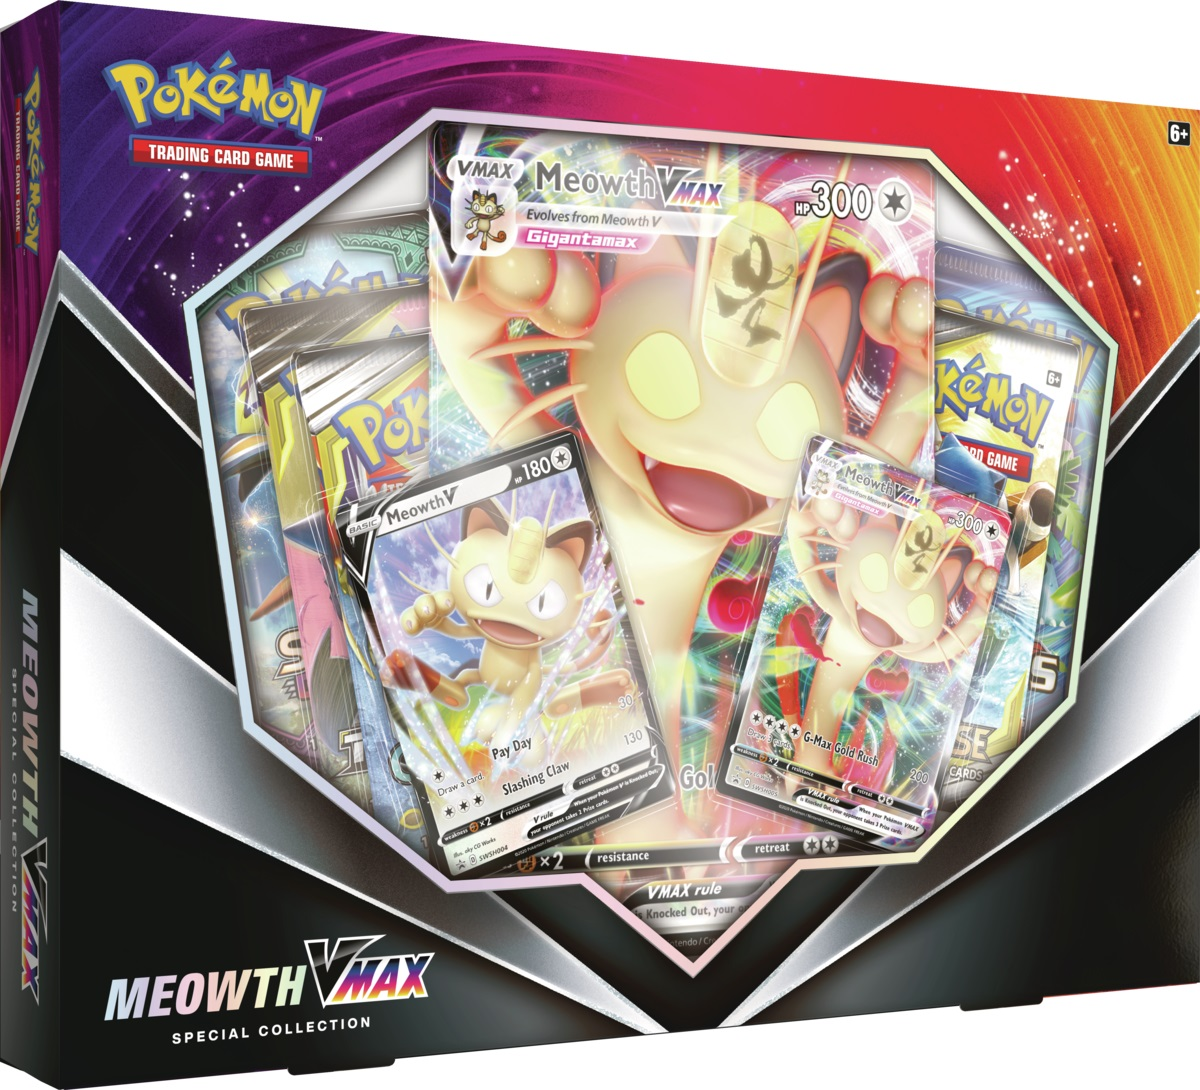 Pokemon Meowth VMAX Special Collection